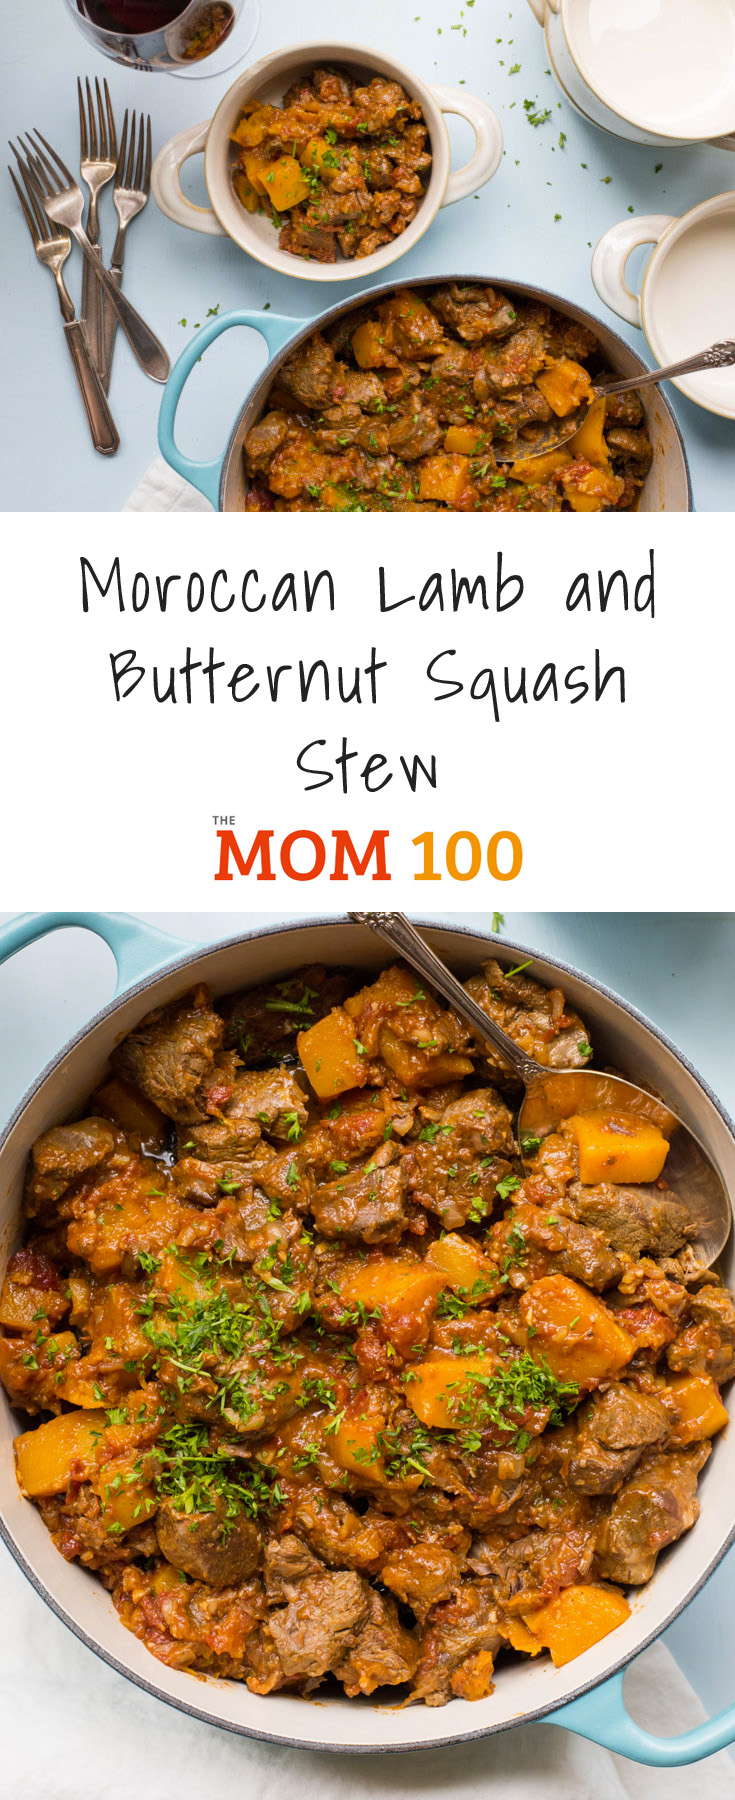 Moroccan Lamb and Butternut Squash Stew - an easy stew that is so lovely to come home to on a chilly night (and reheats like a dream).